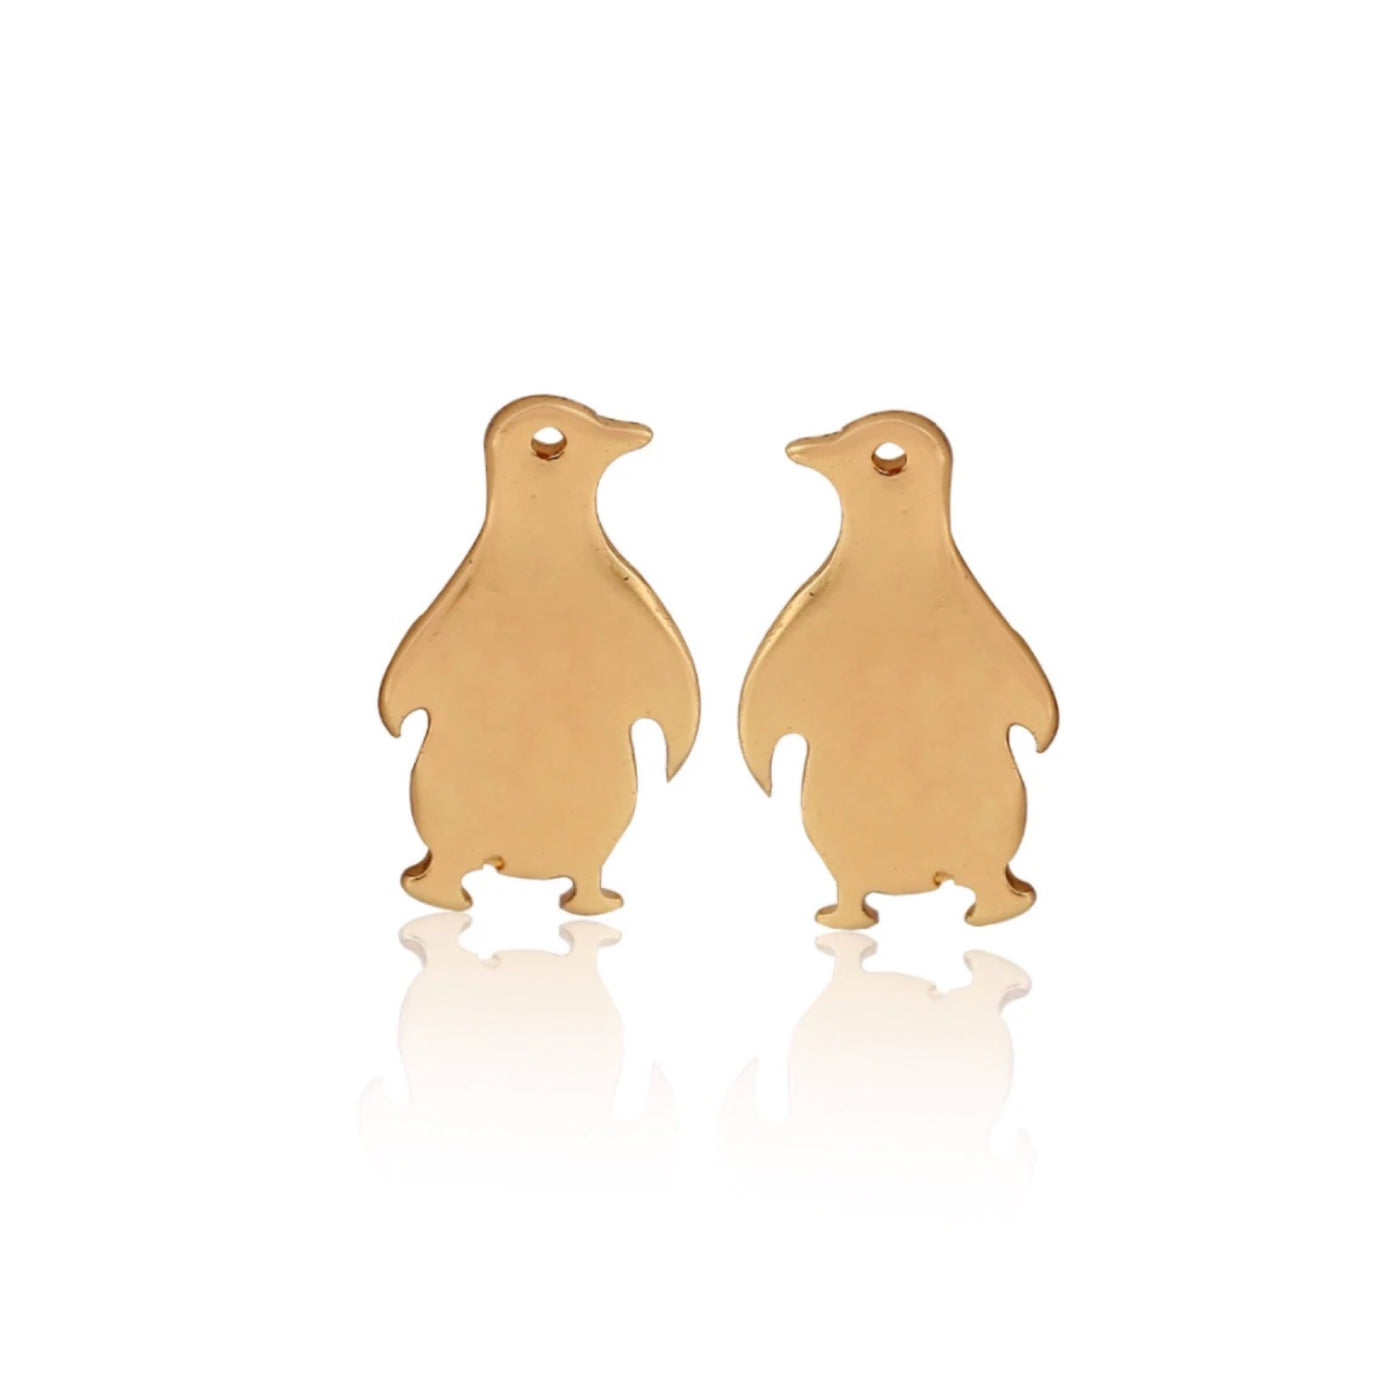 Pedro Stud Earrings - Gold